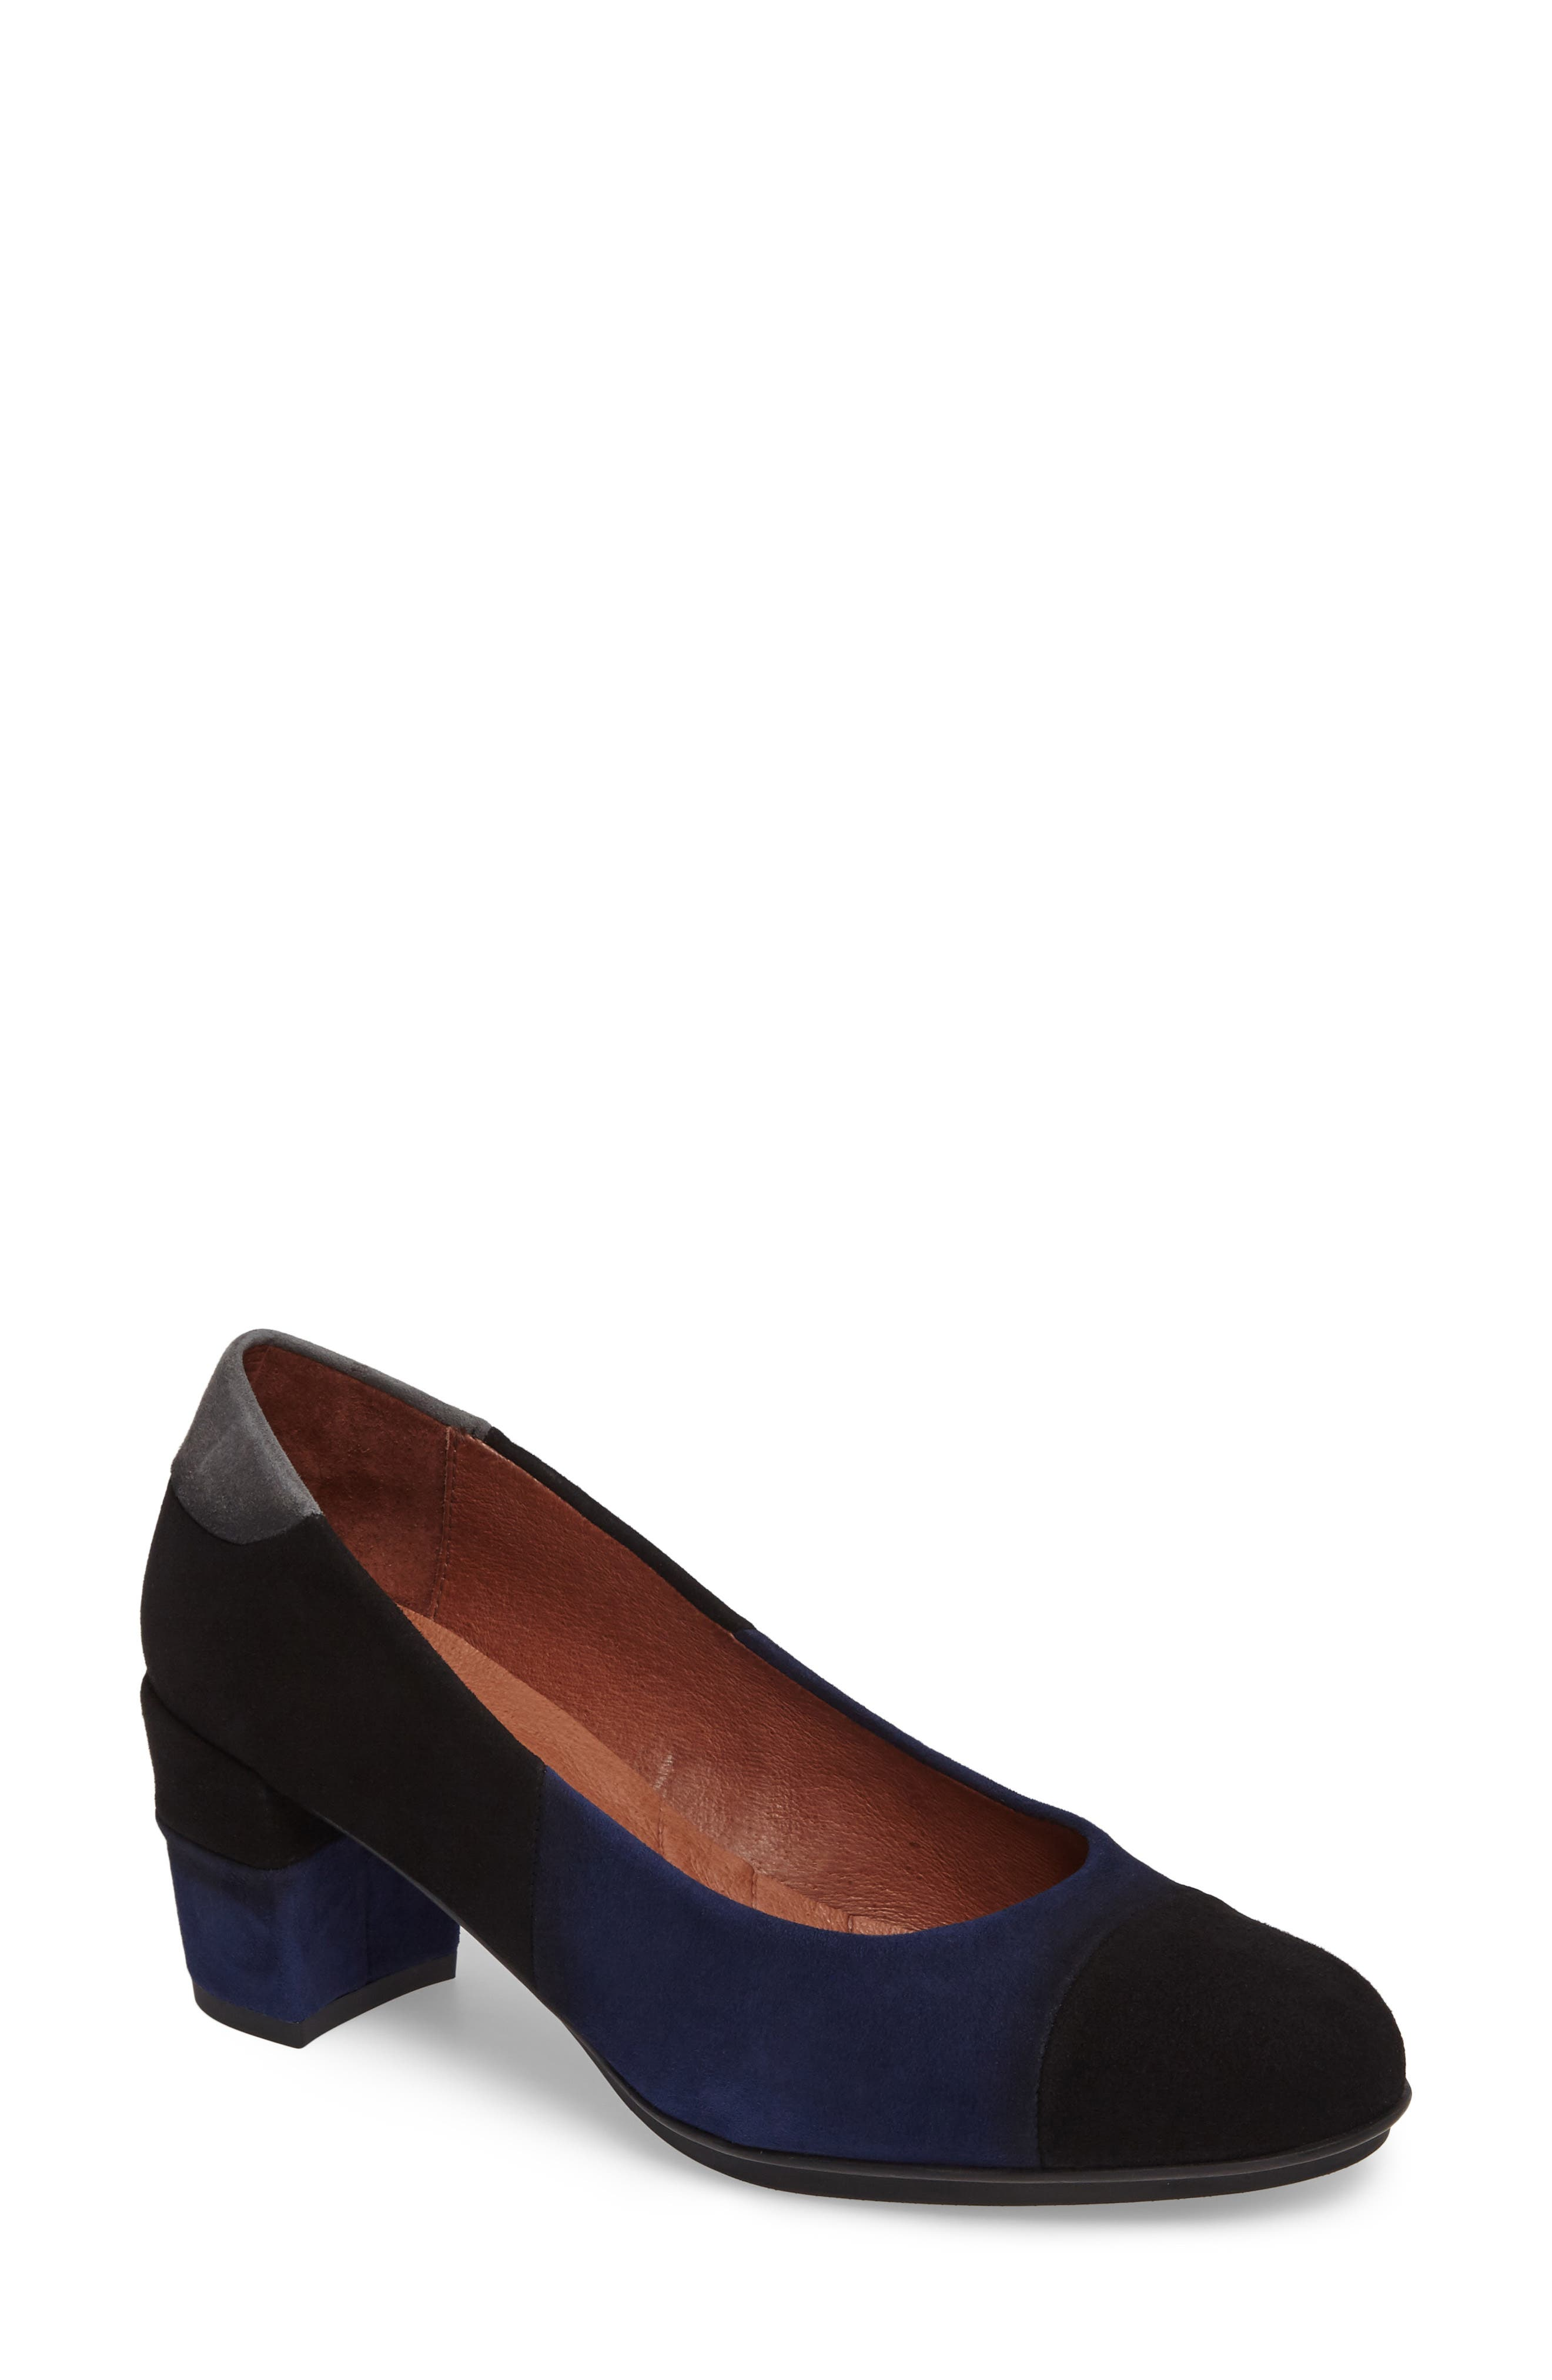 Alternate Image 1 Selected - Hispanitas Sandy Colorblock Pump (Women)